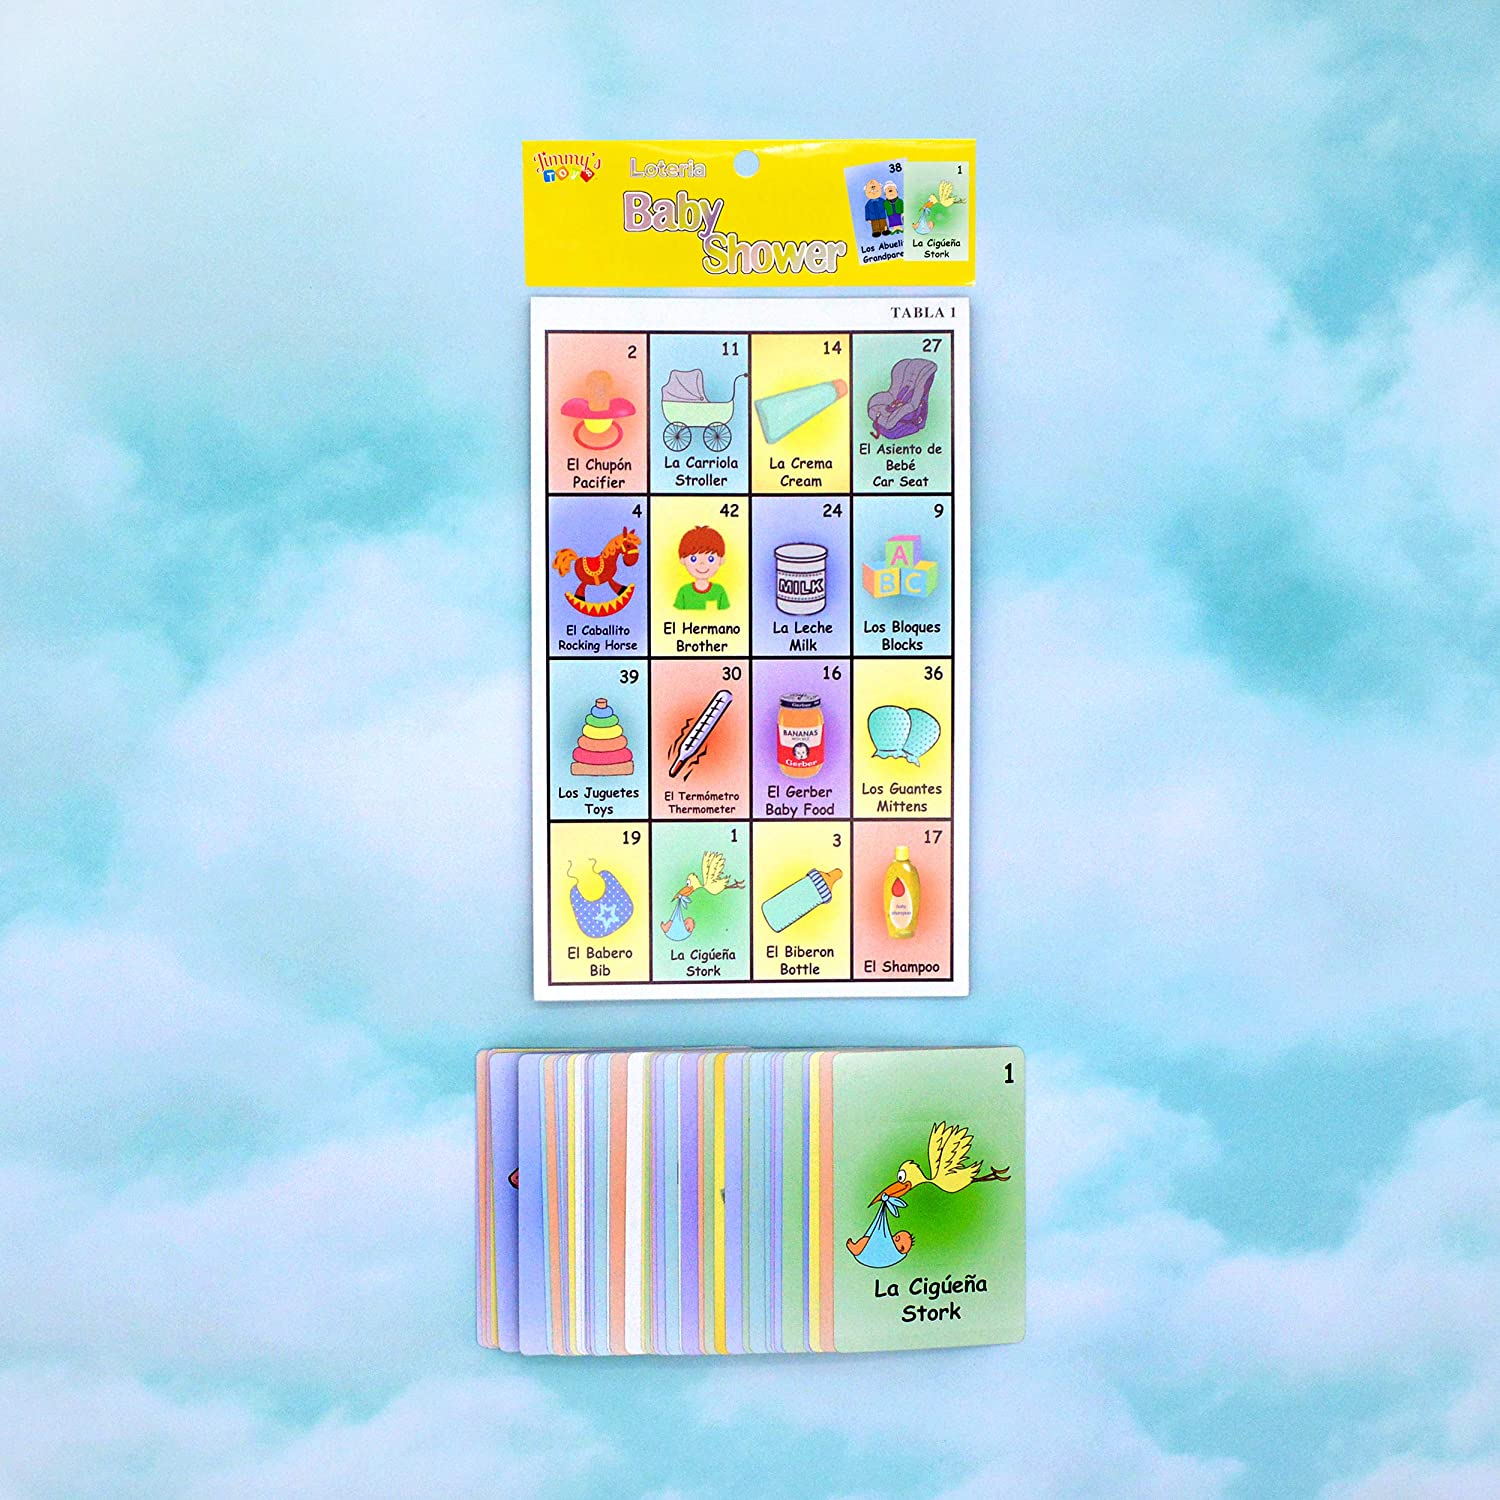 Amazon.com: JIMMYS TOYS Baby Shower Loteria Game: Toys & Games